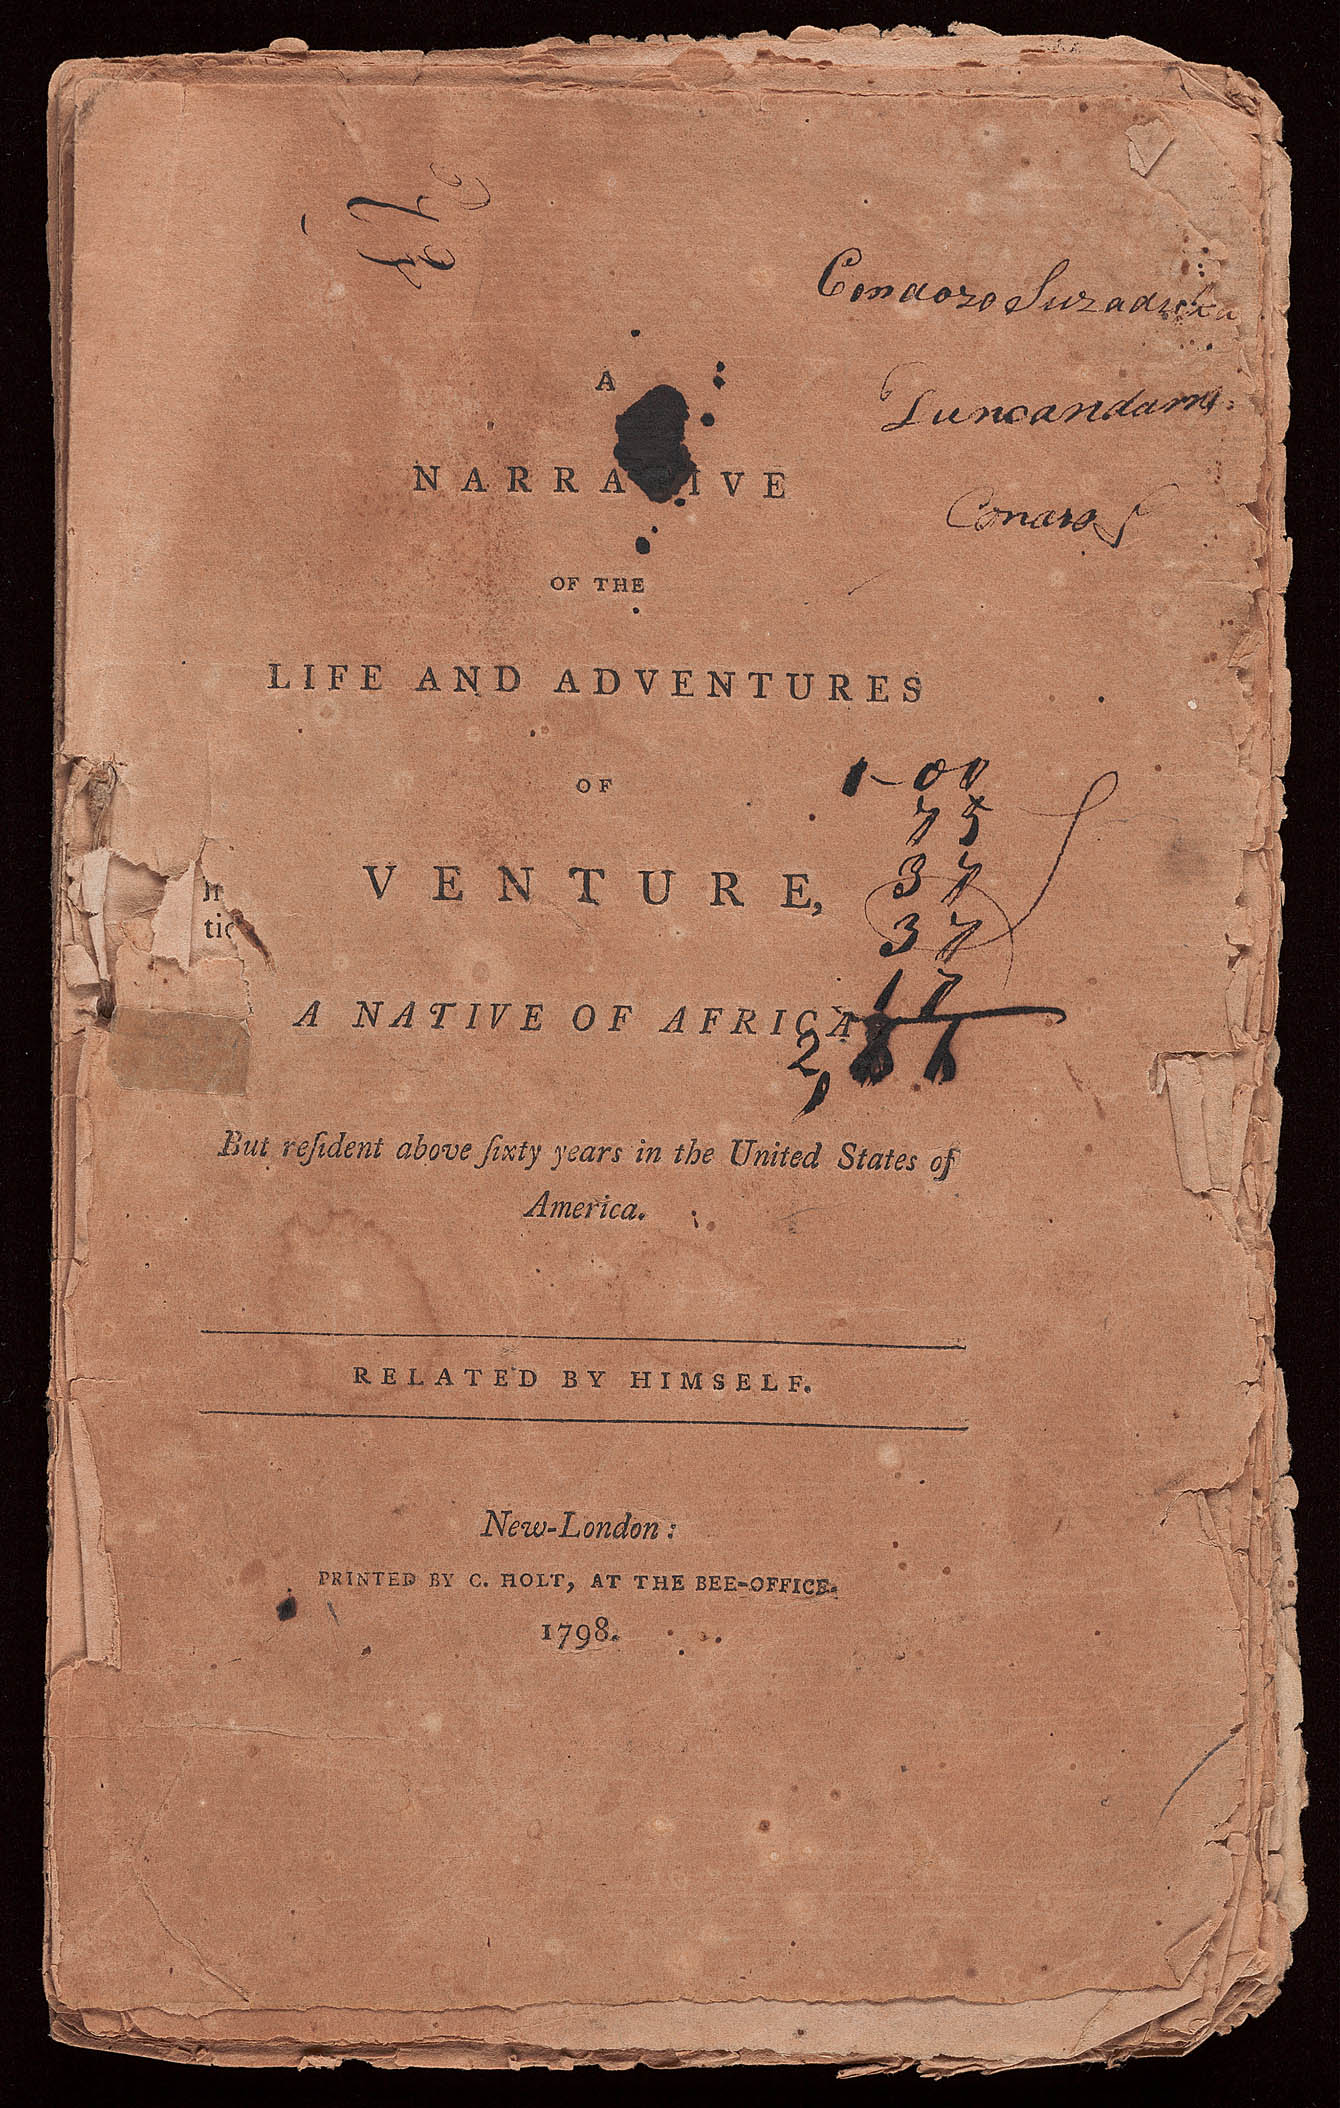 Title page of Venture Smith's narrative.